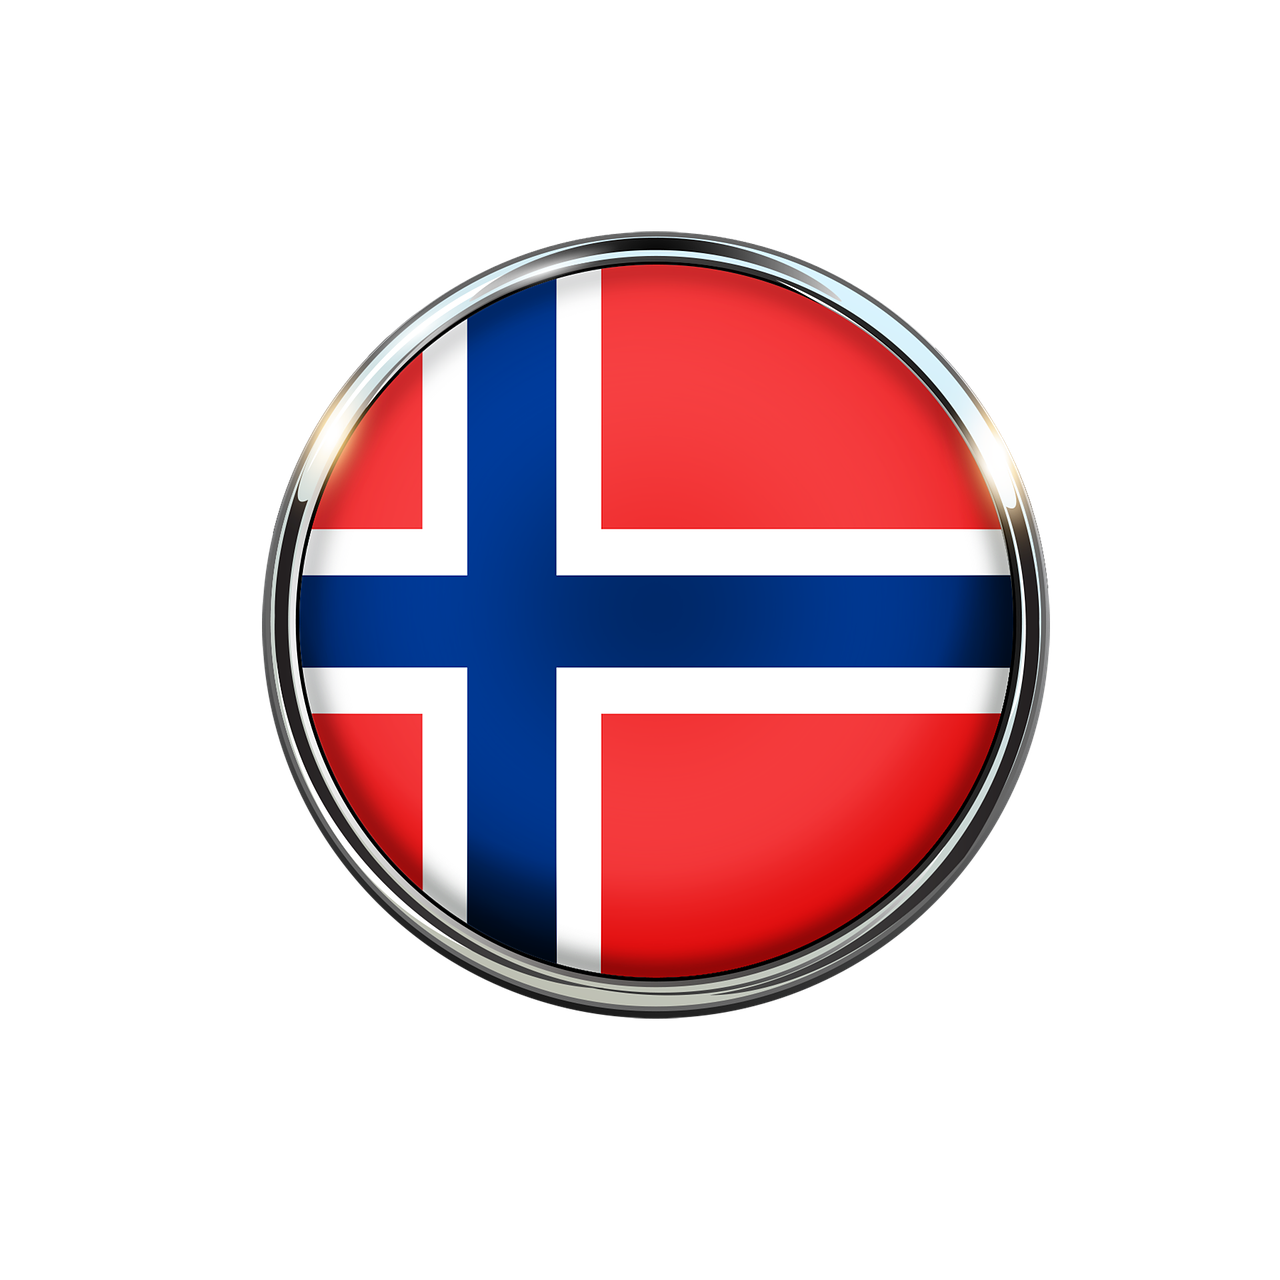 norway-2332851_1280.png